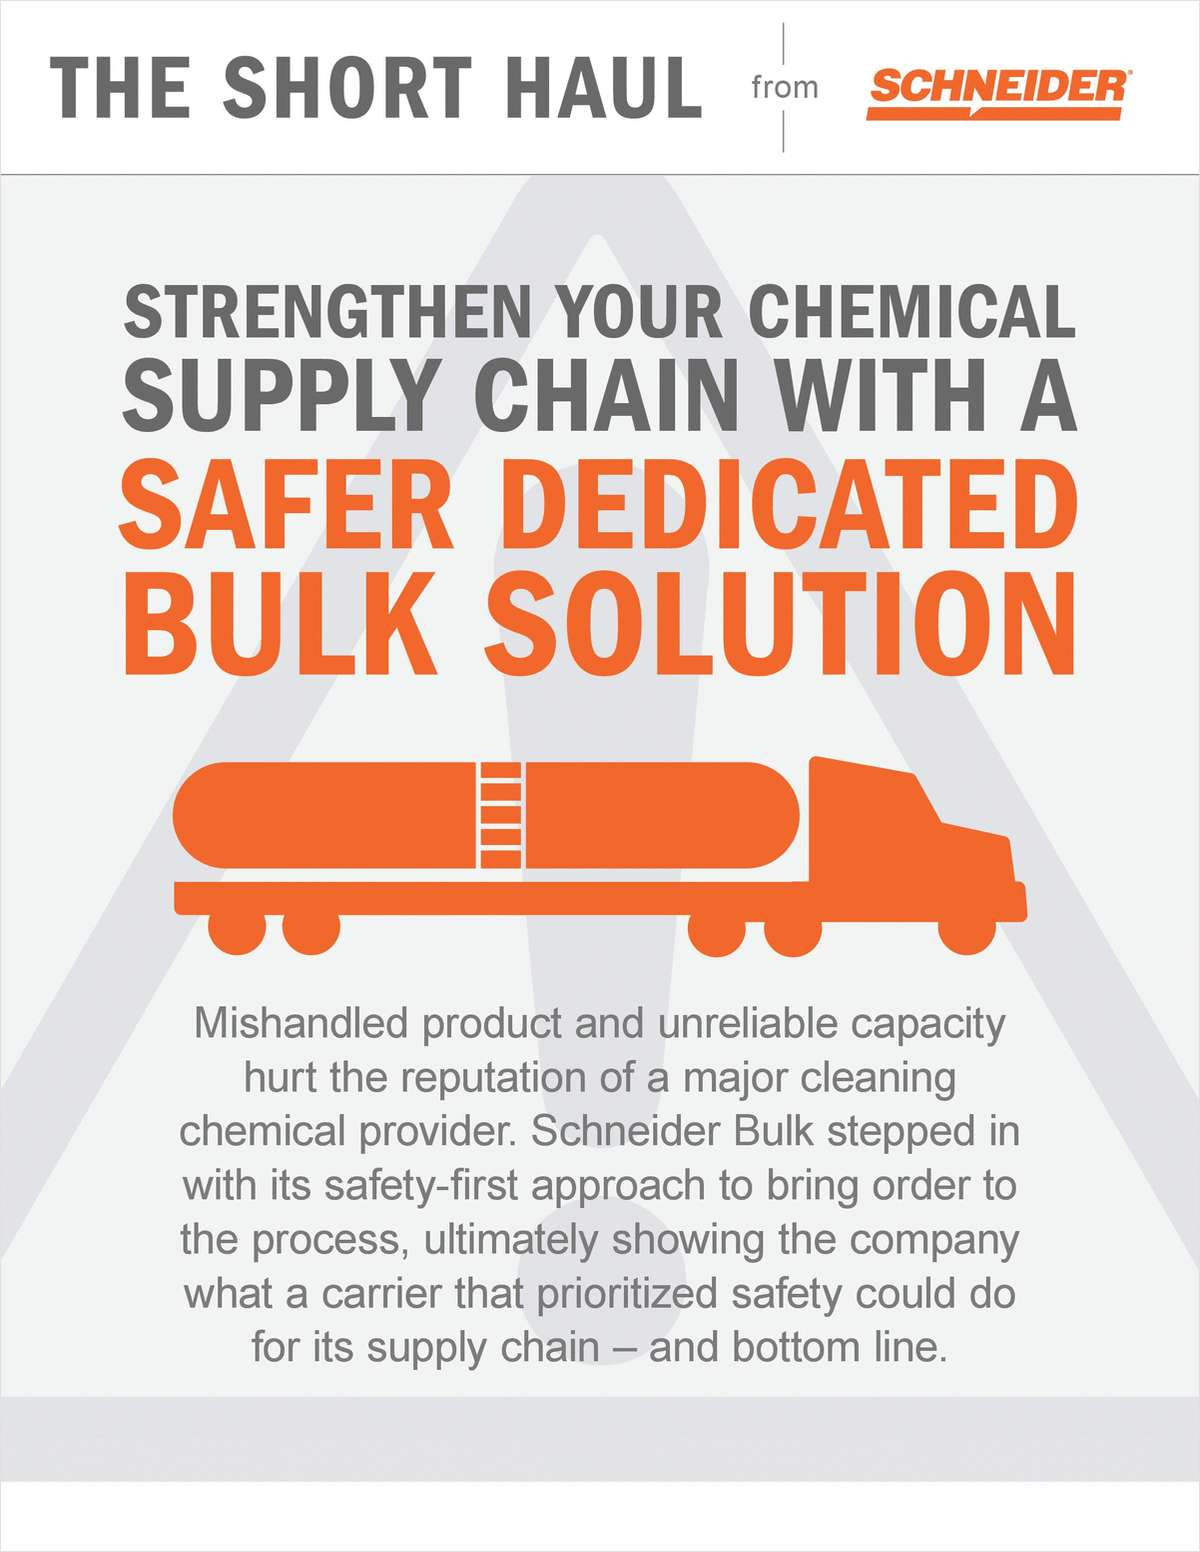 Strengthen Your Chemical Supply Chain With A Safer Dedicated Bulk Solution